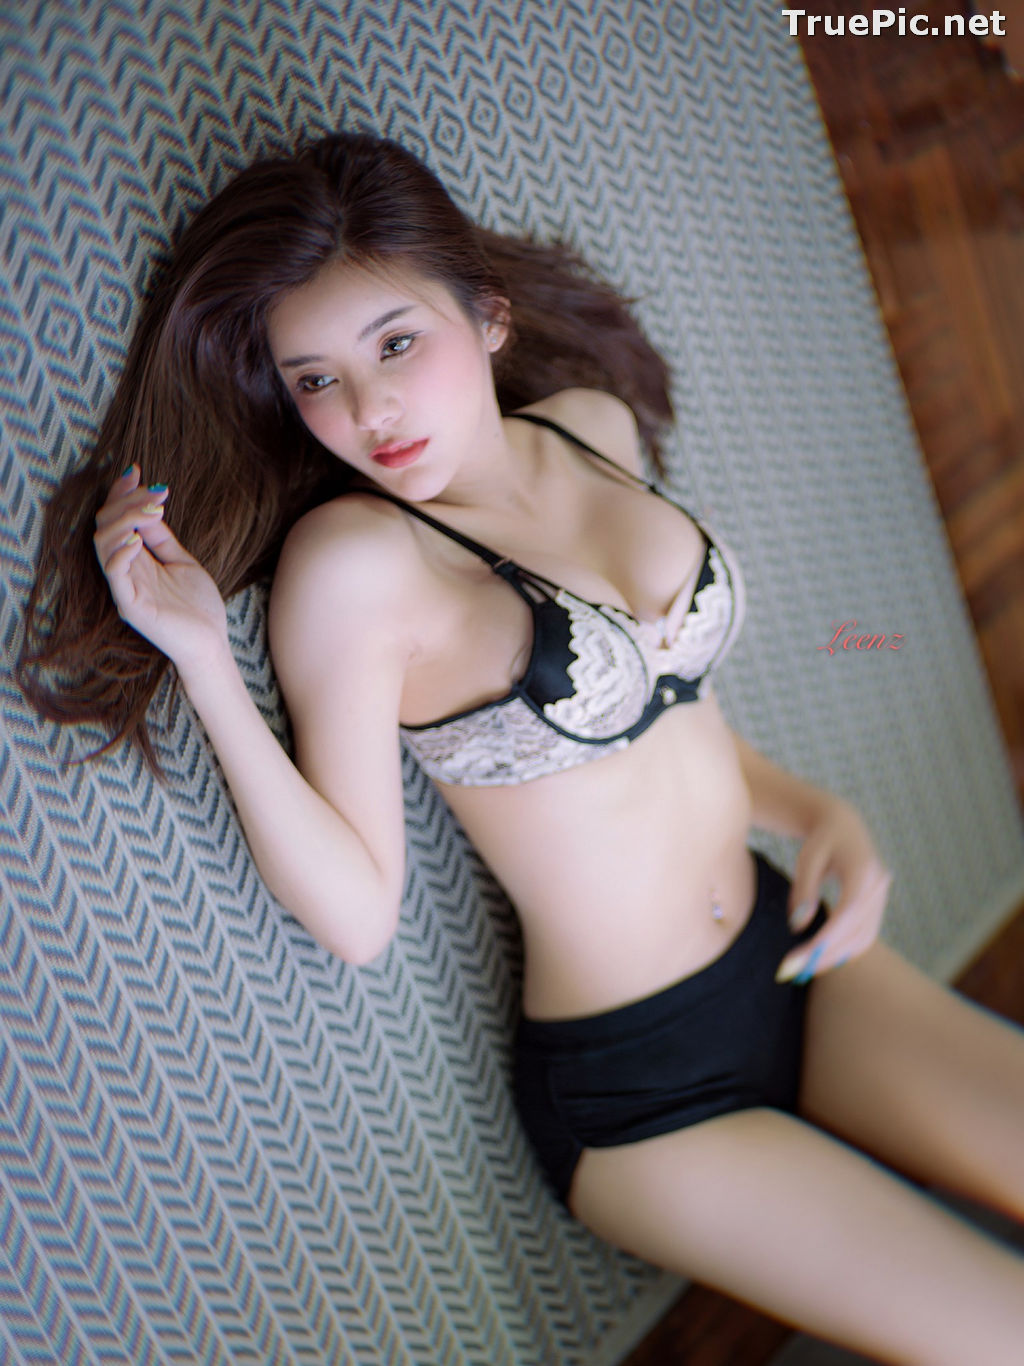 Image Thailand Model - Supitcha Boonkumphoung - Home Alone? Lingerie - TruePic.net - Picture-22